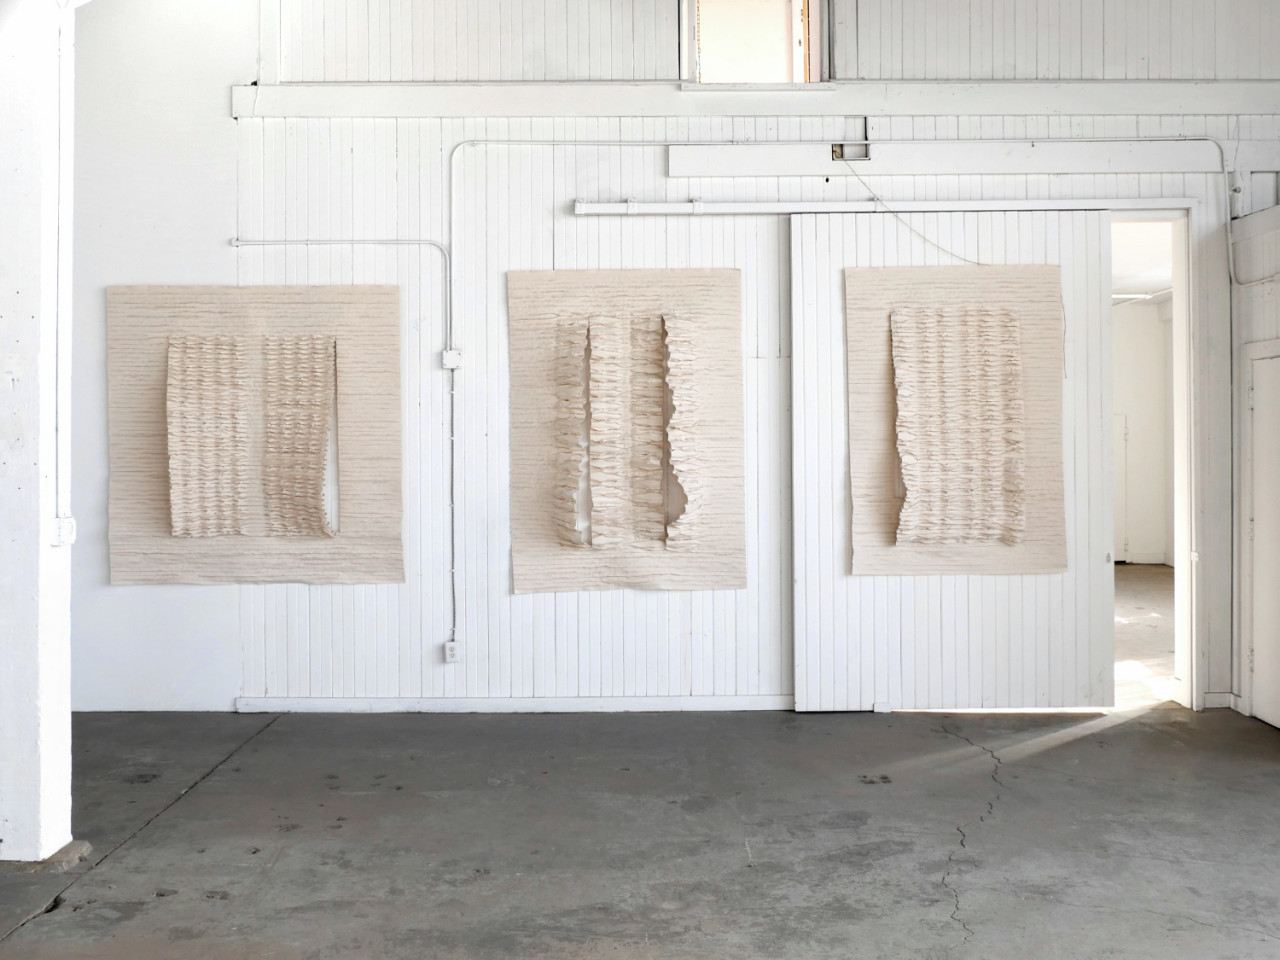 Mary Little's Undulating Sculptures Take Residence in an Abandoned Warehouse